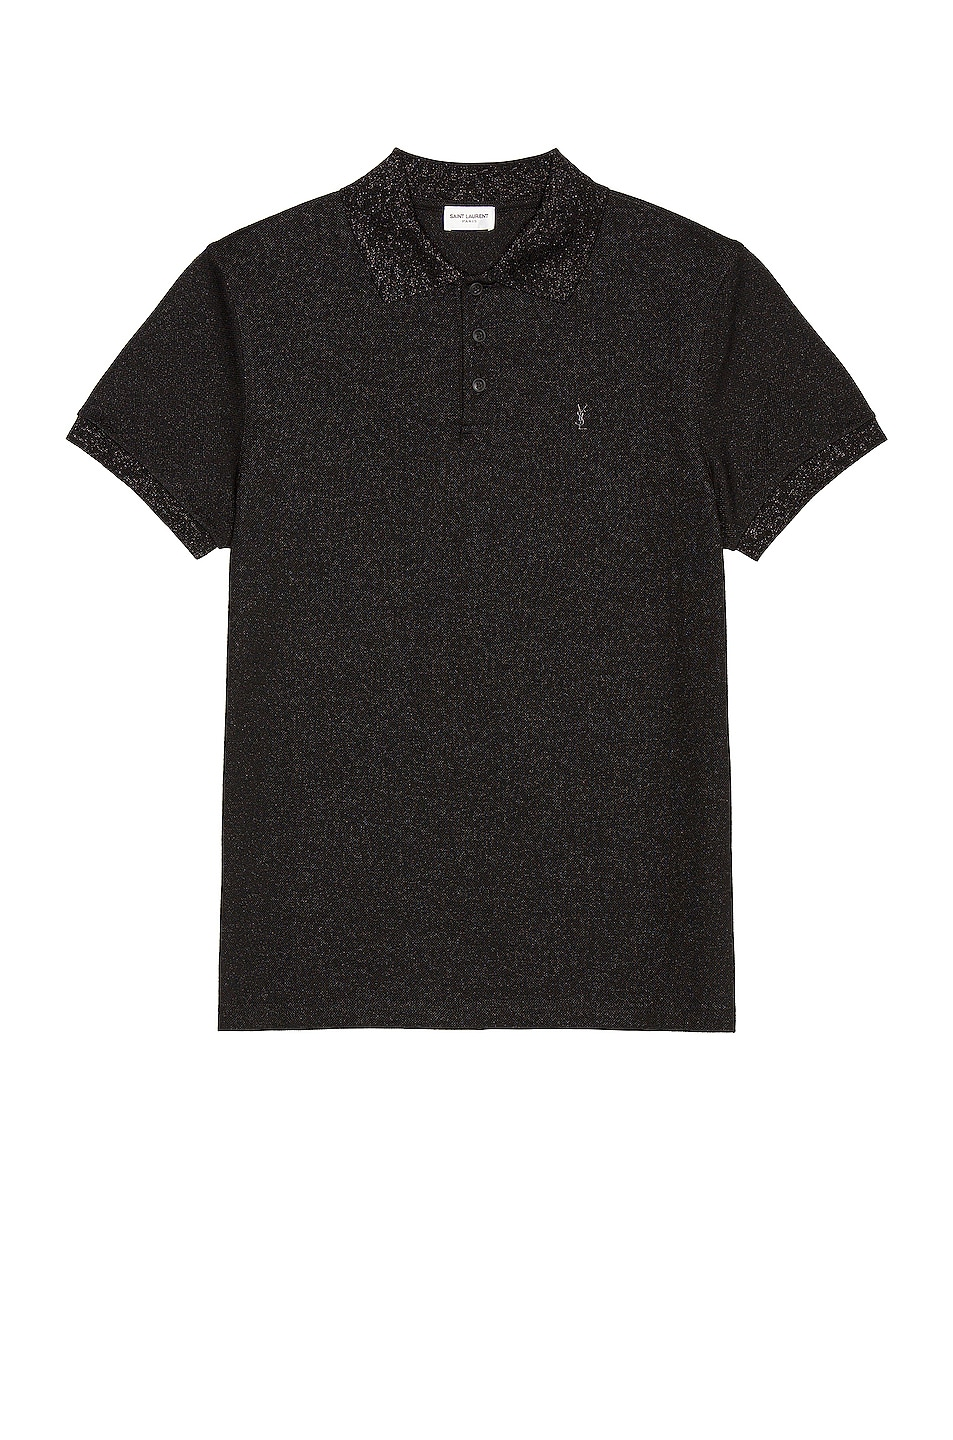 Image 1 of Saint Laurent Short Sleeve Polo in Black & Black Brillant